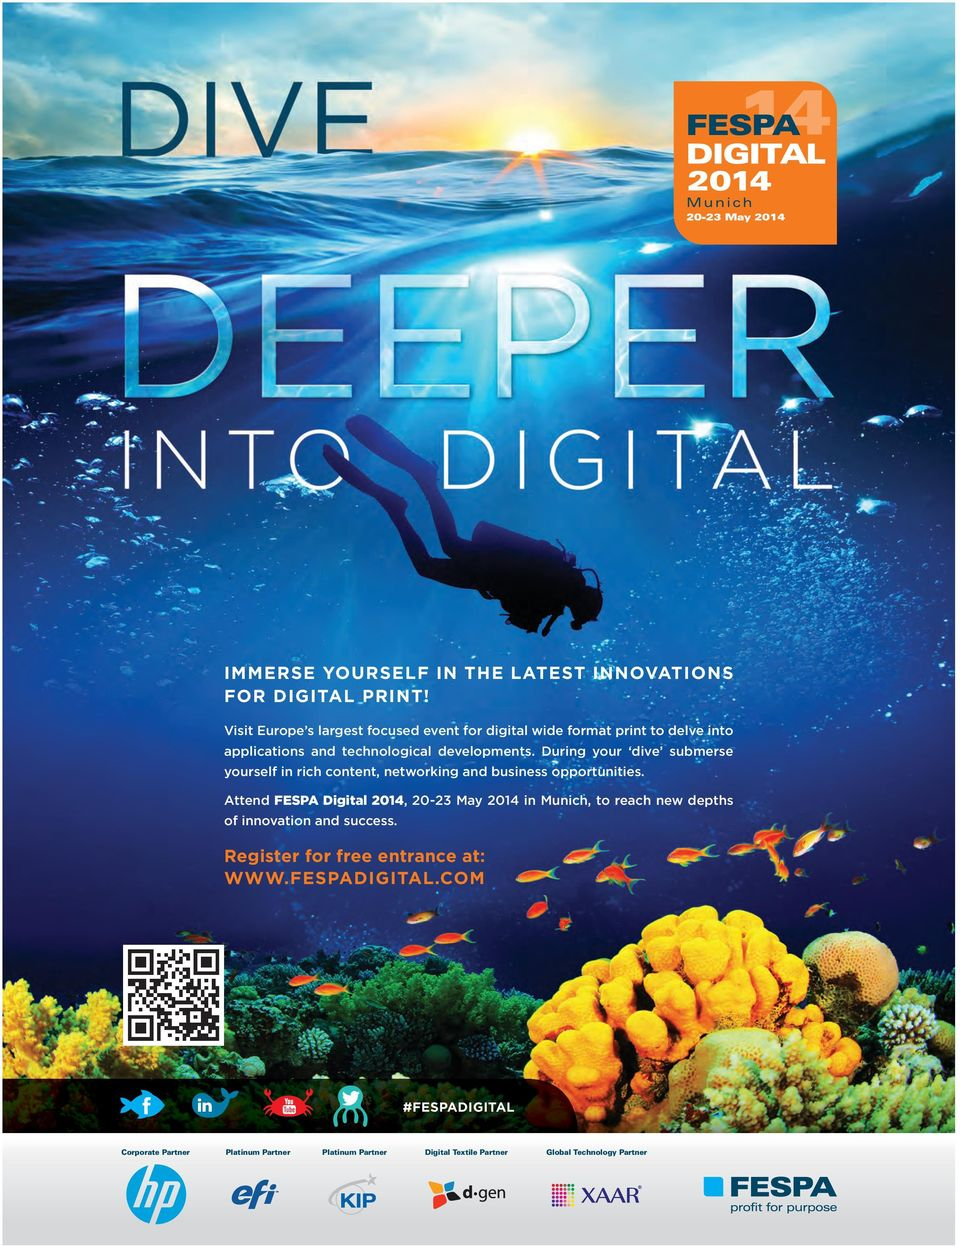 During your dive submerse yourself in rich content, networking and business opportunities.